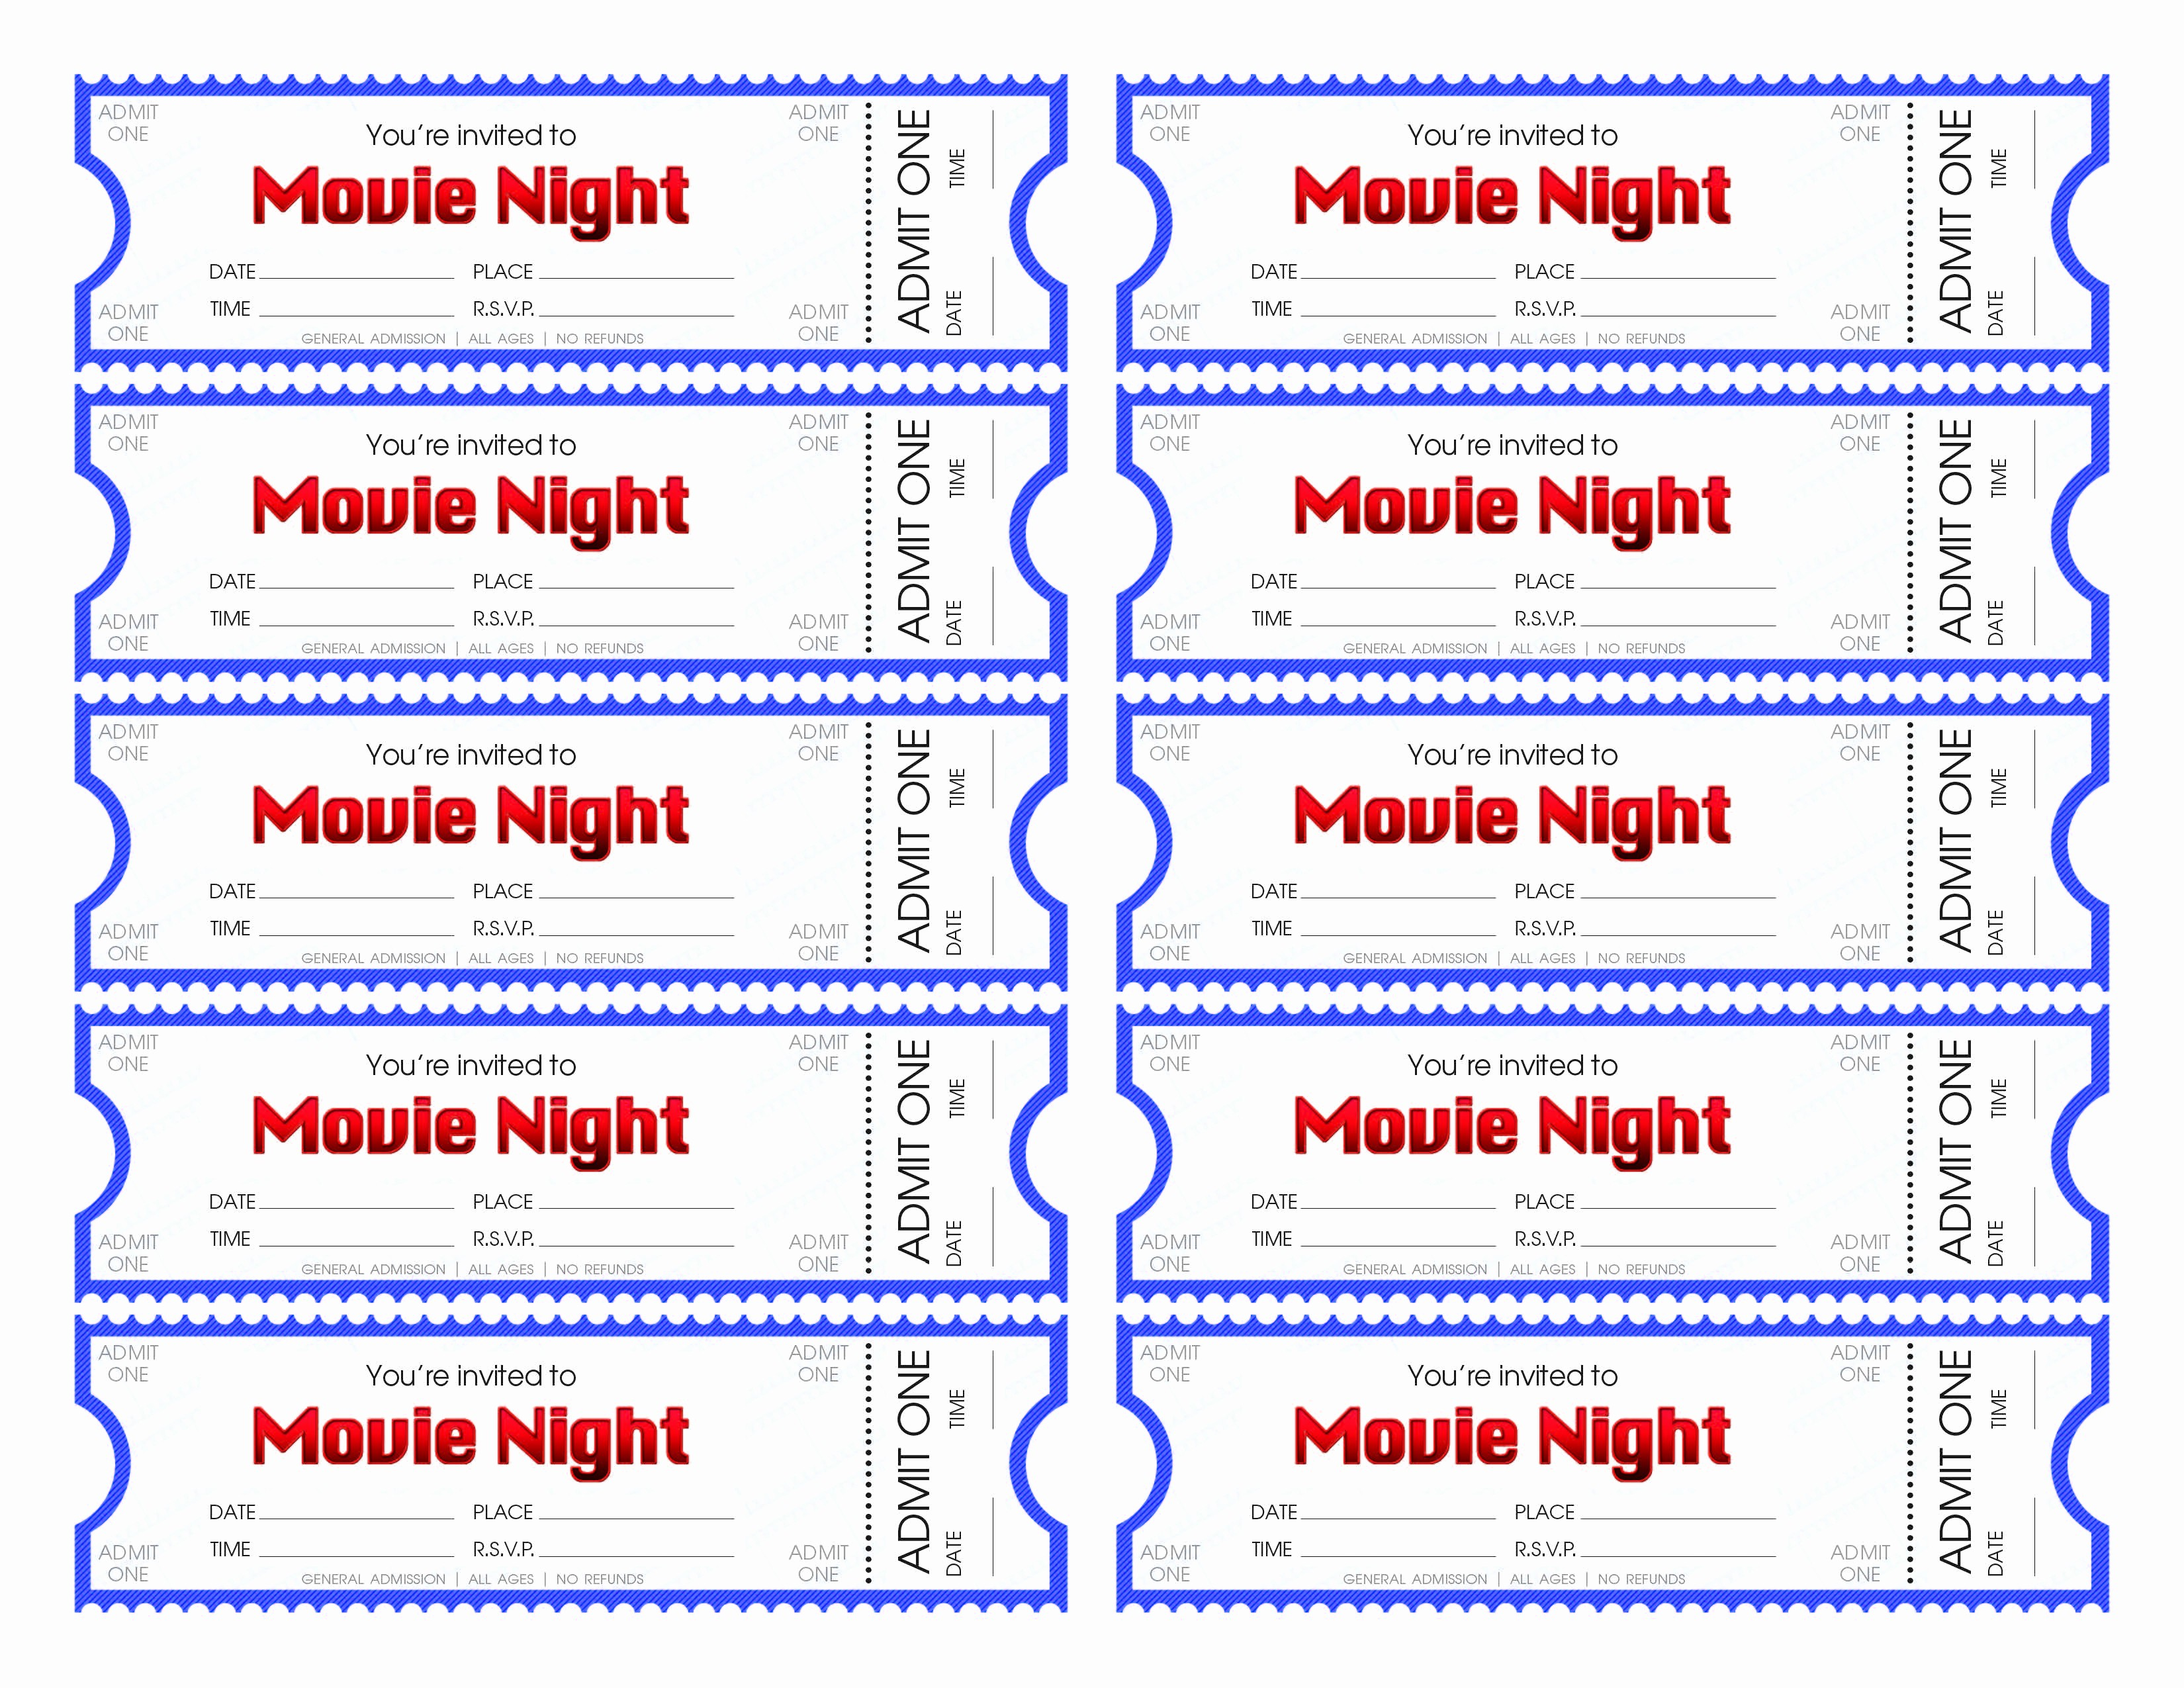 Movie Ticket Template Free Printable Inspirational Make Your Own Movie Night Tickets